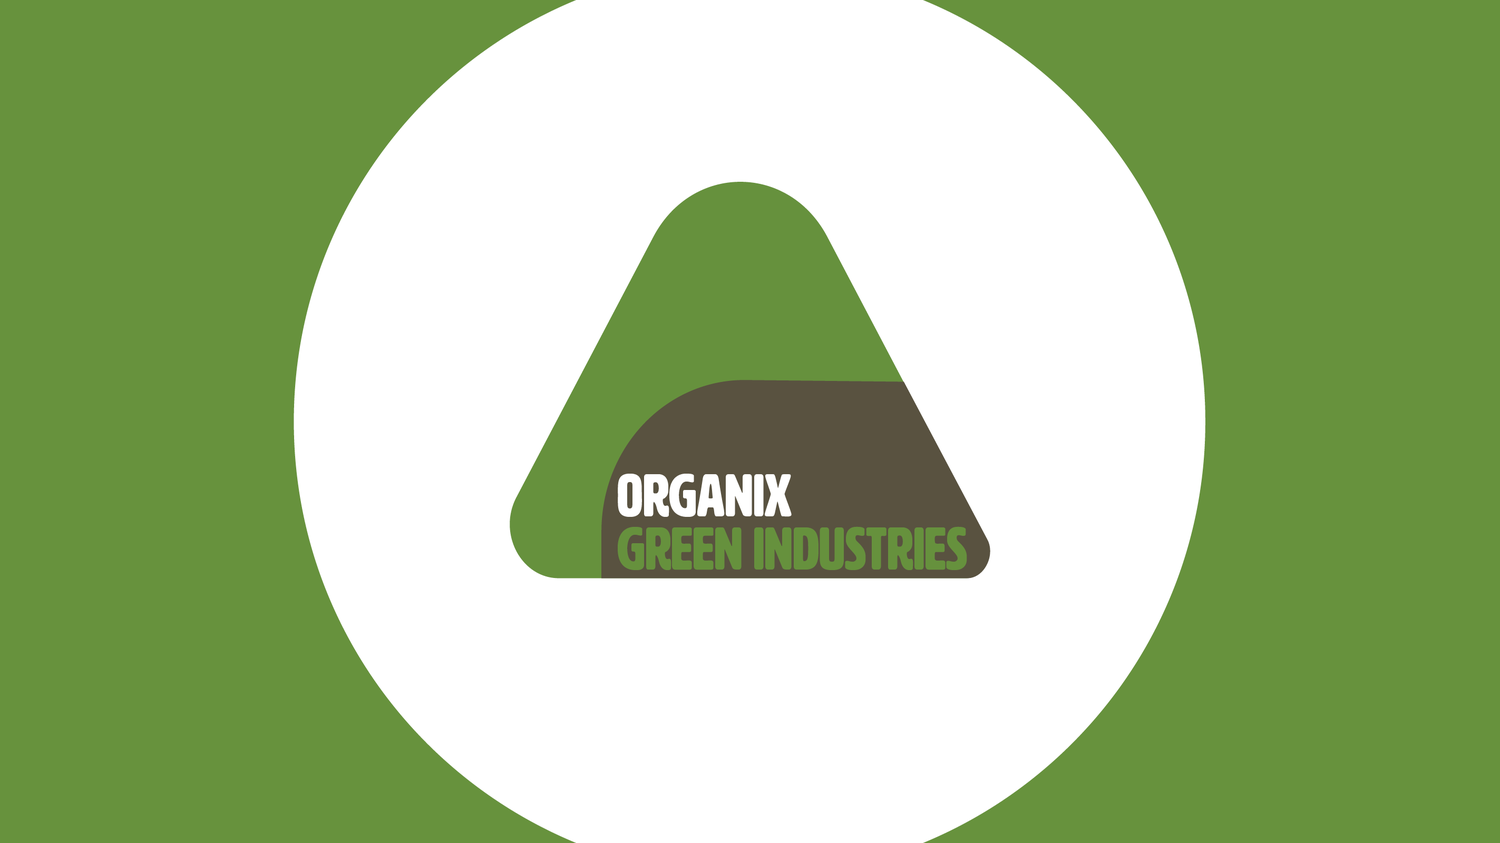 Organix Green Industries - has been operating scaled vermiculture facilities since 2006.